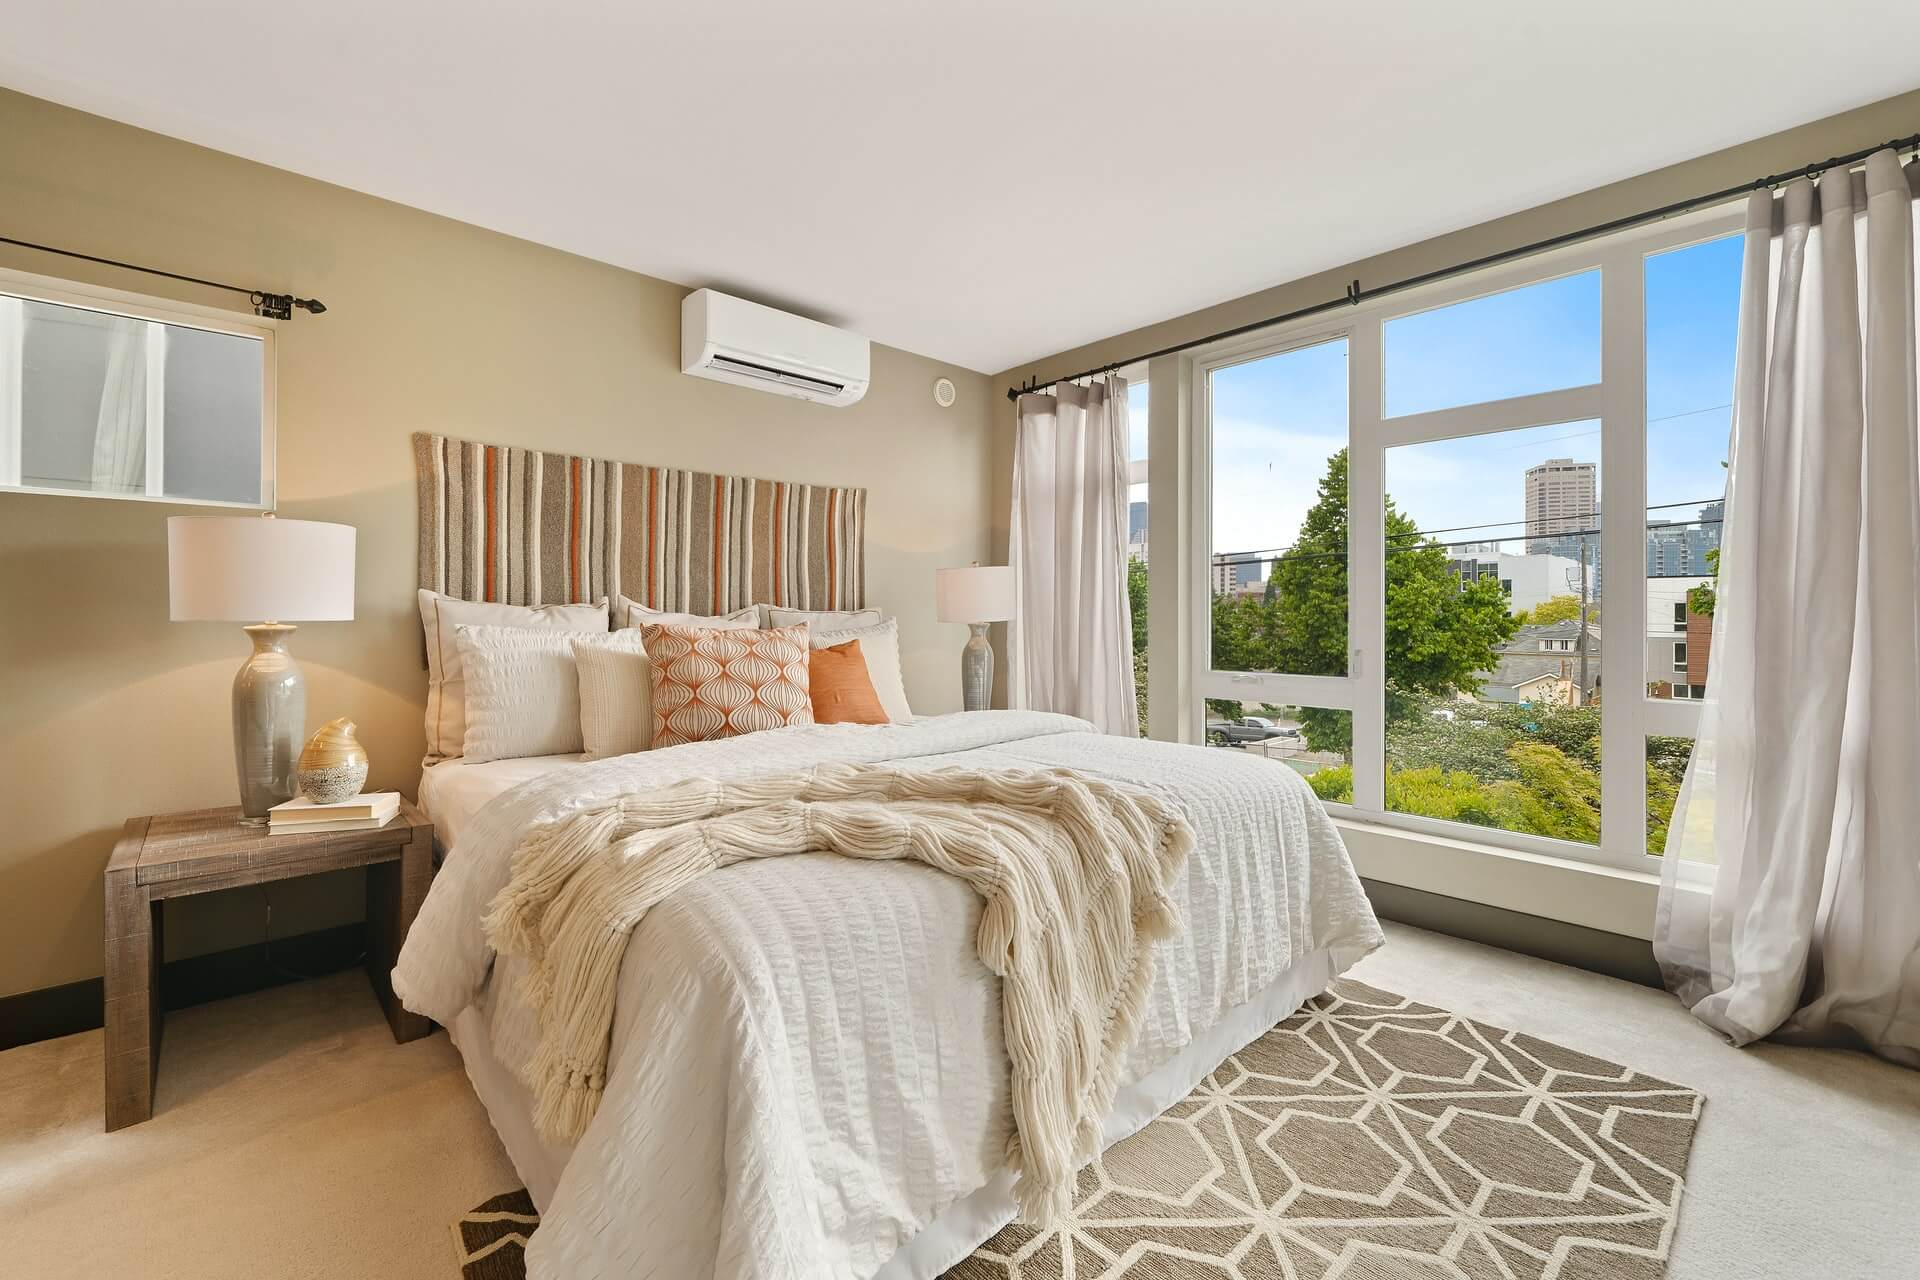 Bright summery bedroom with white bed set and large open windows